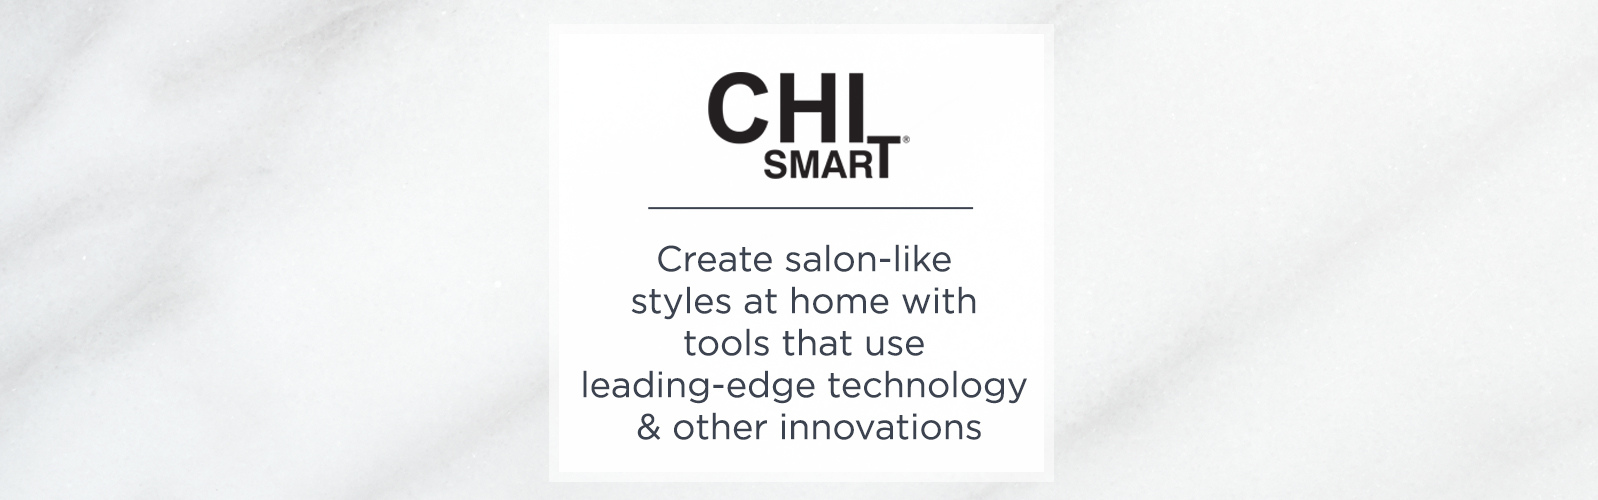 CHI Smart. Create salon-like styles at home with tools that use leading-edge technology & other innovations